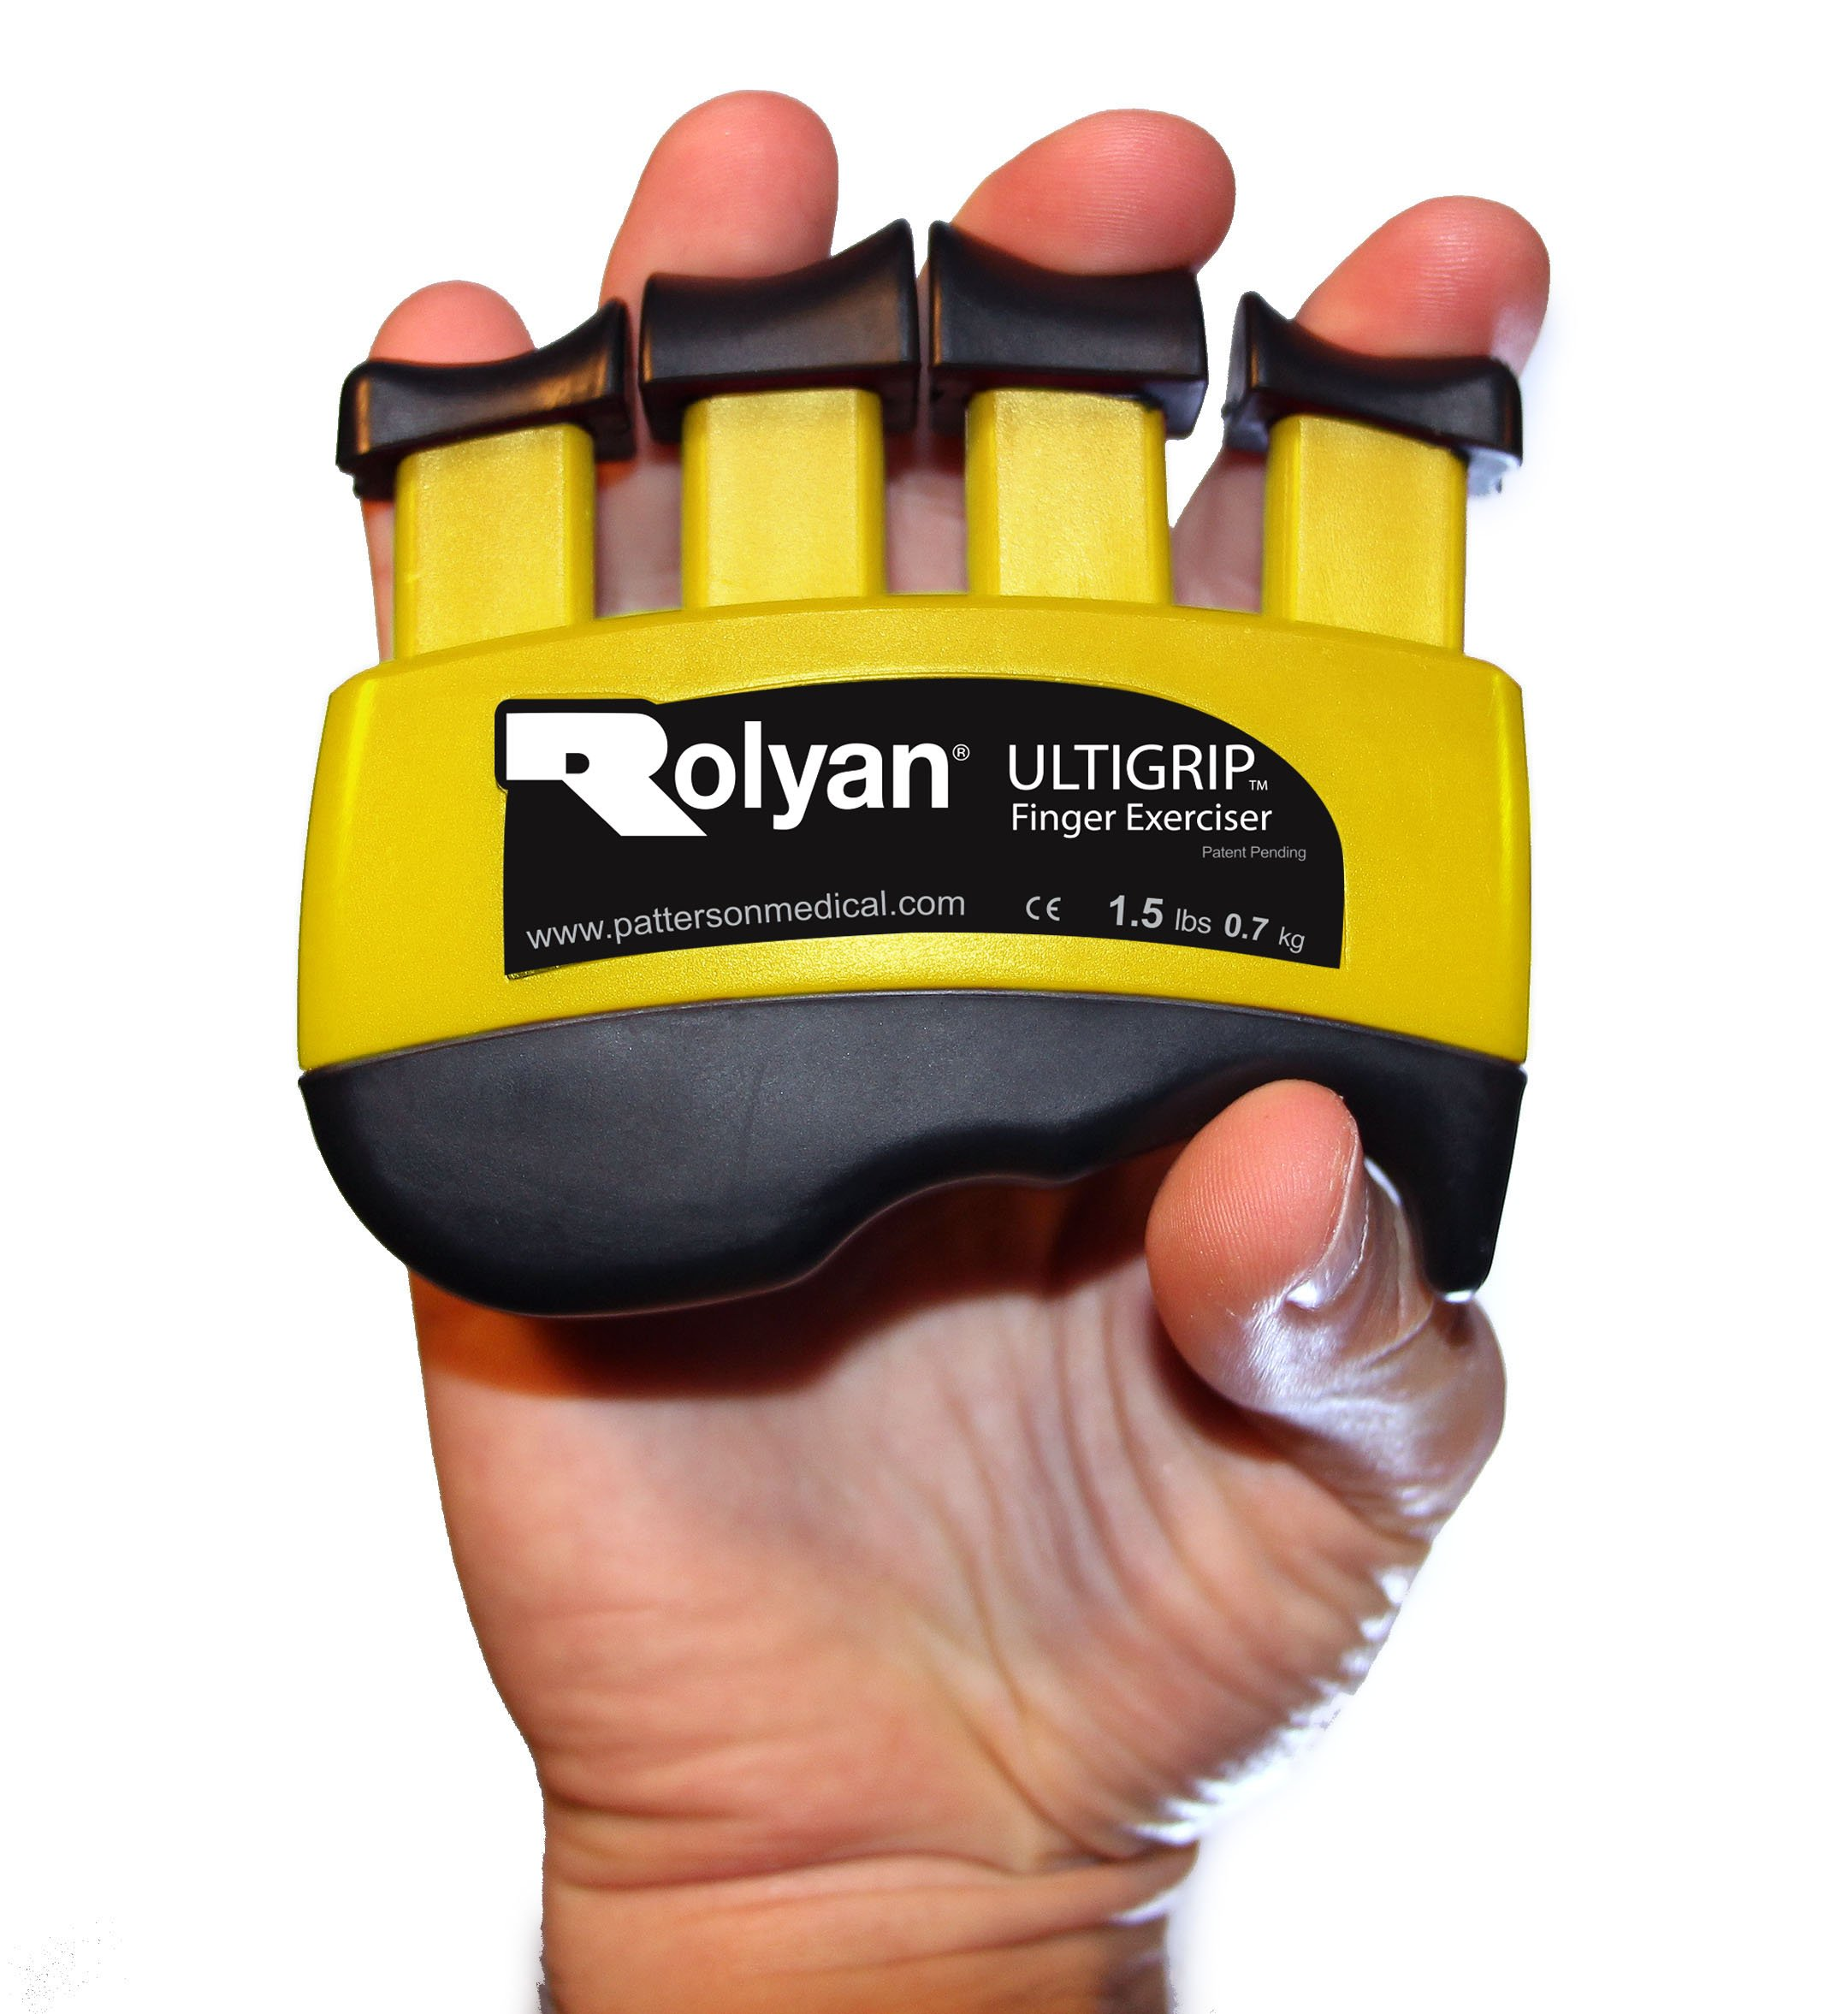 Rolyan Ultigrip Finger Exercisers, Yellow, 1.5-Pounds, Finger & Grip Strengthener for Physical Therapy, Ergonomic Hand Workout Aid, Portable Hand Exerciser for Home, Clinic, & Rehabilitation